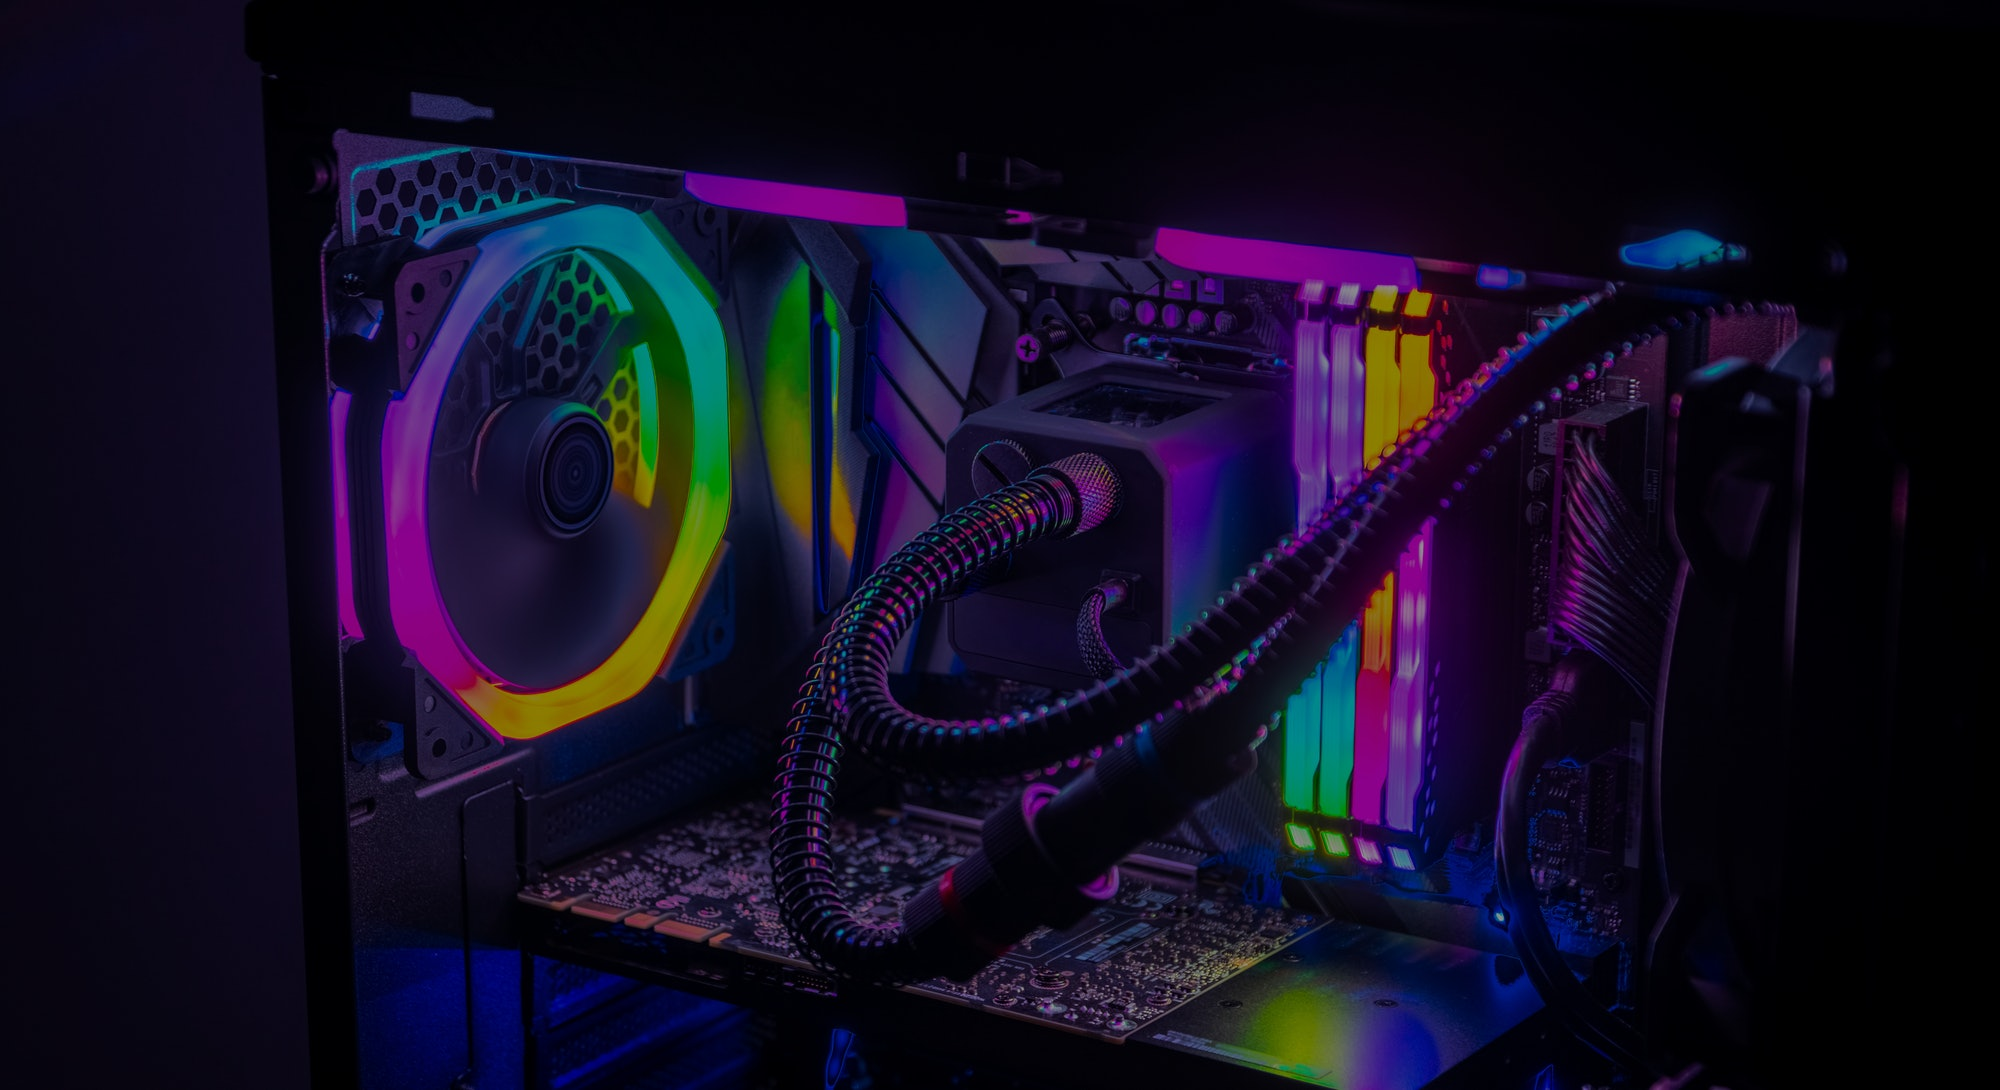 Gaming PC with RGB LED lights on a computer, assembled with hardware components